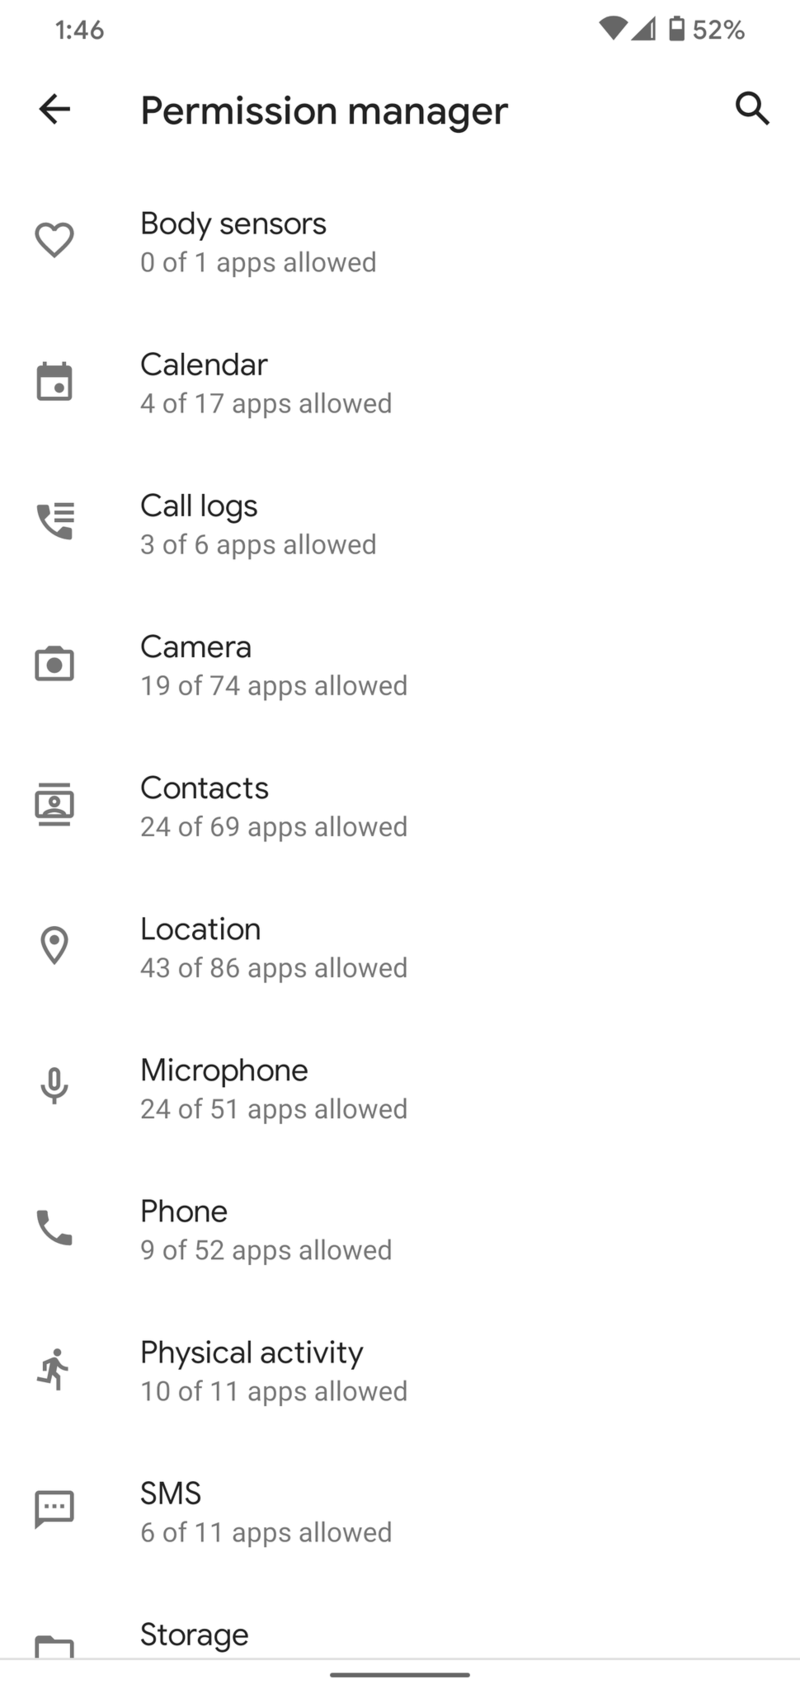 android-app-permissions-7.png?itok=ZkBFz